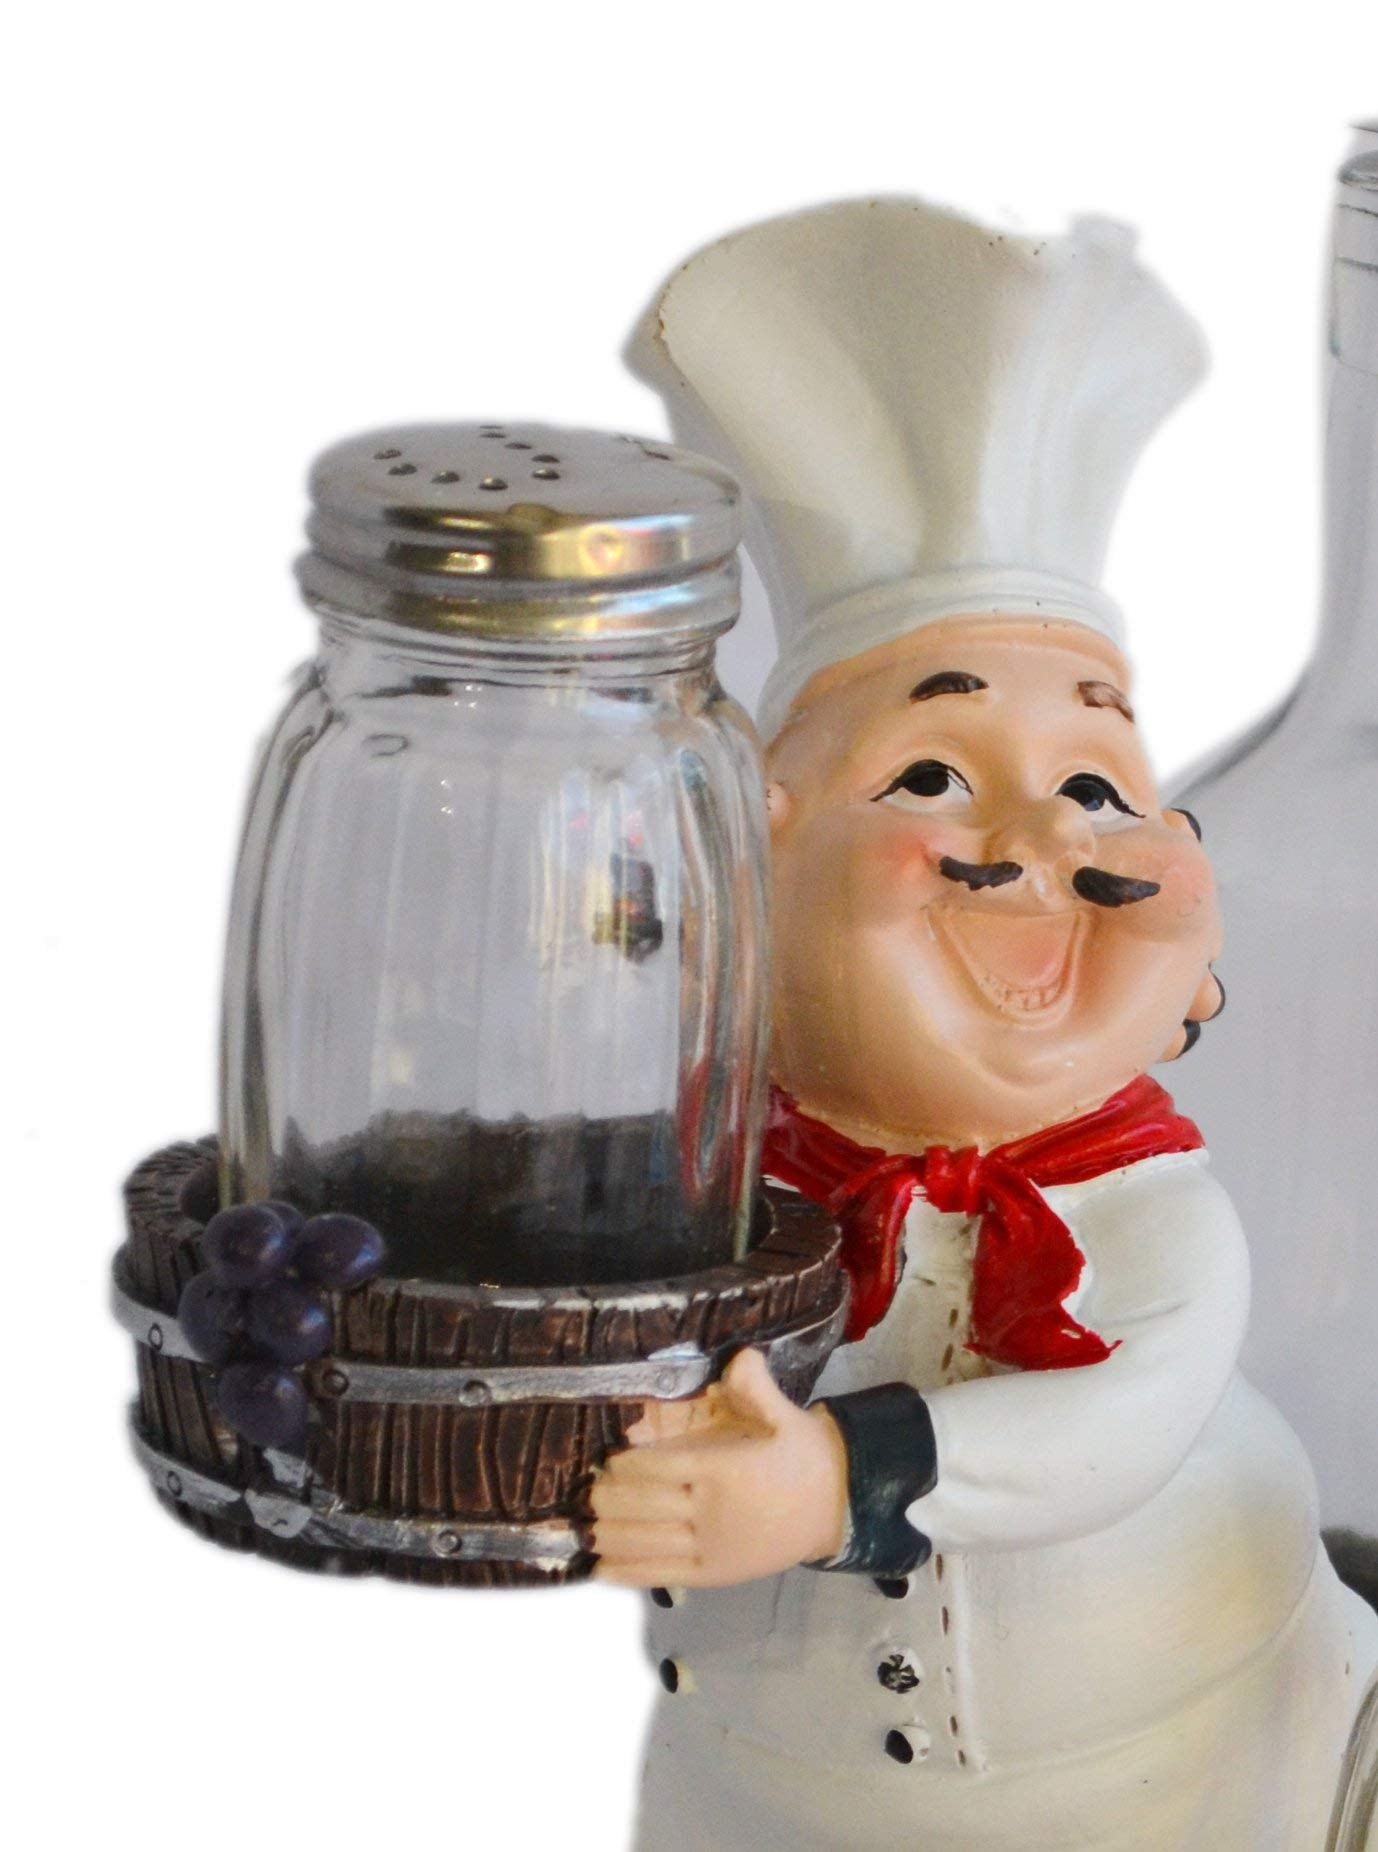 Chef With Resin & Glass Salt Pepper Shakers And Oil Holder Figurine by My Aashis (Image #2)